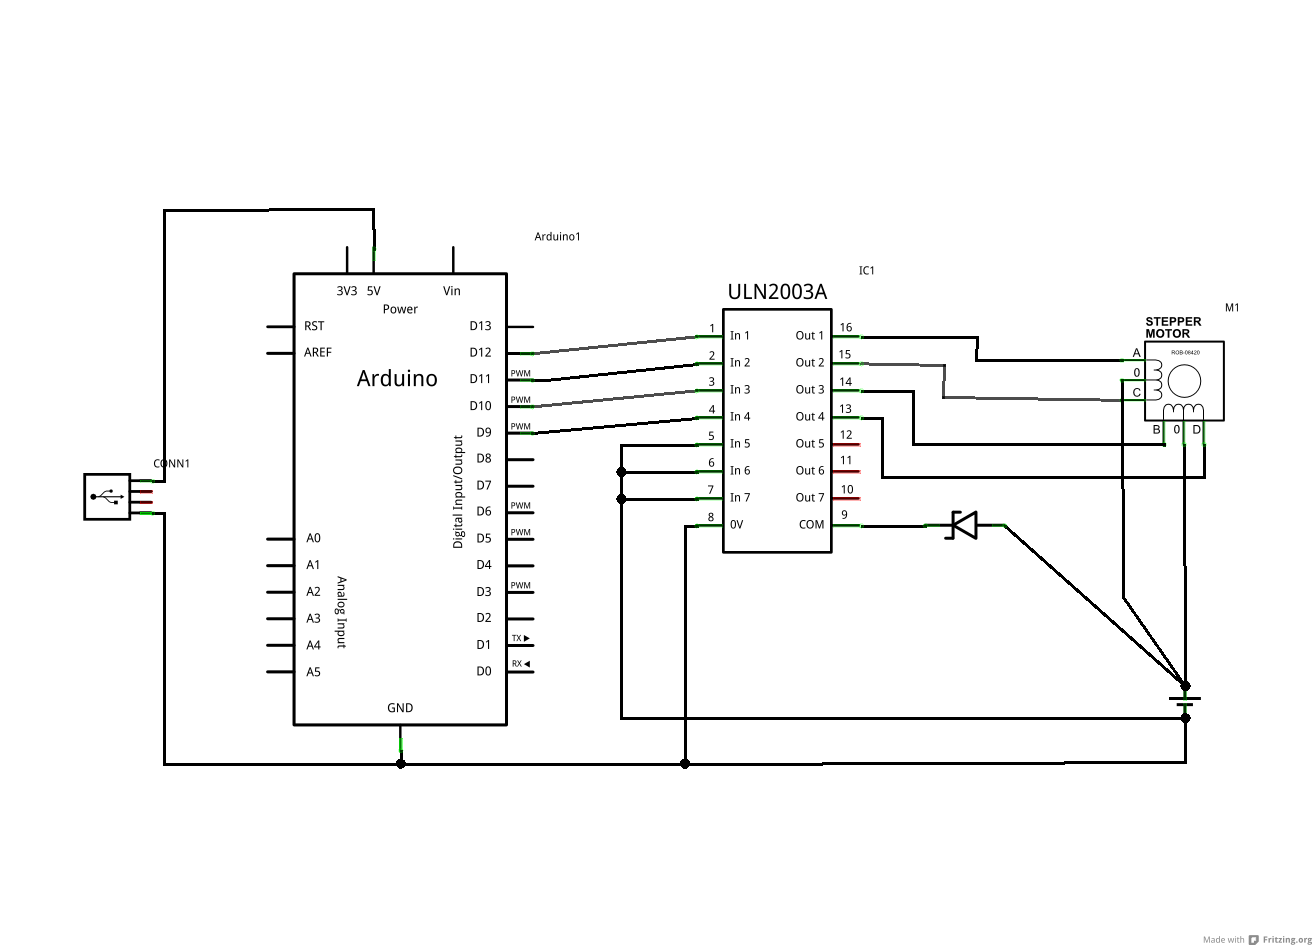 Stepper Motor 4 Wire Diagram : 28 Wiring Diagram Images